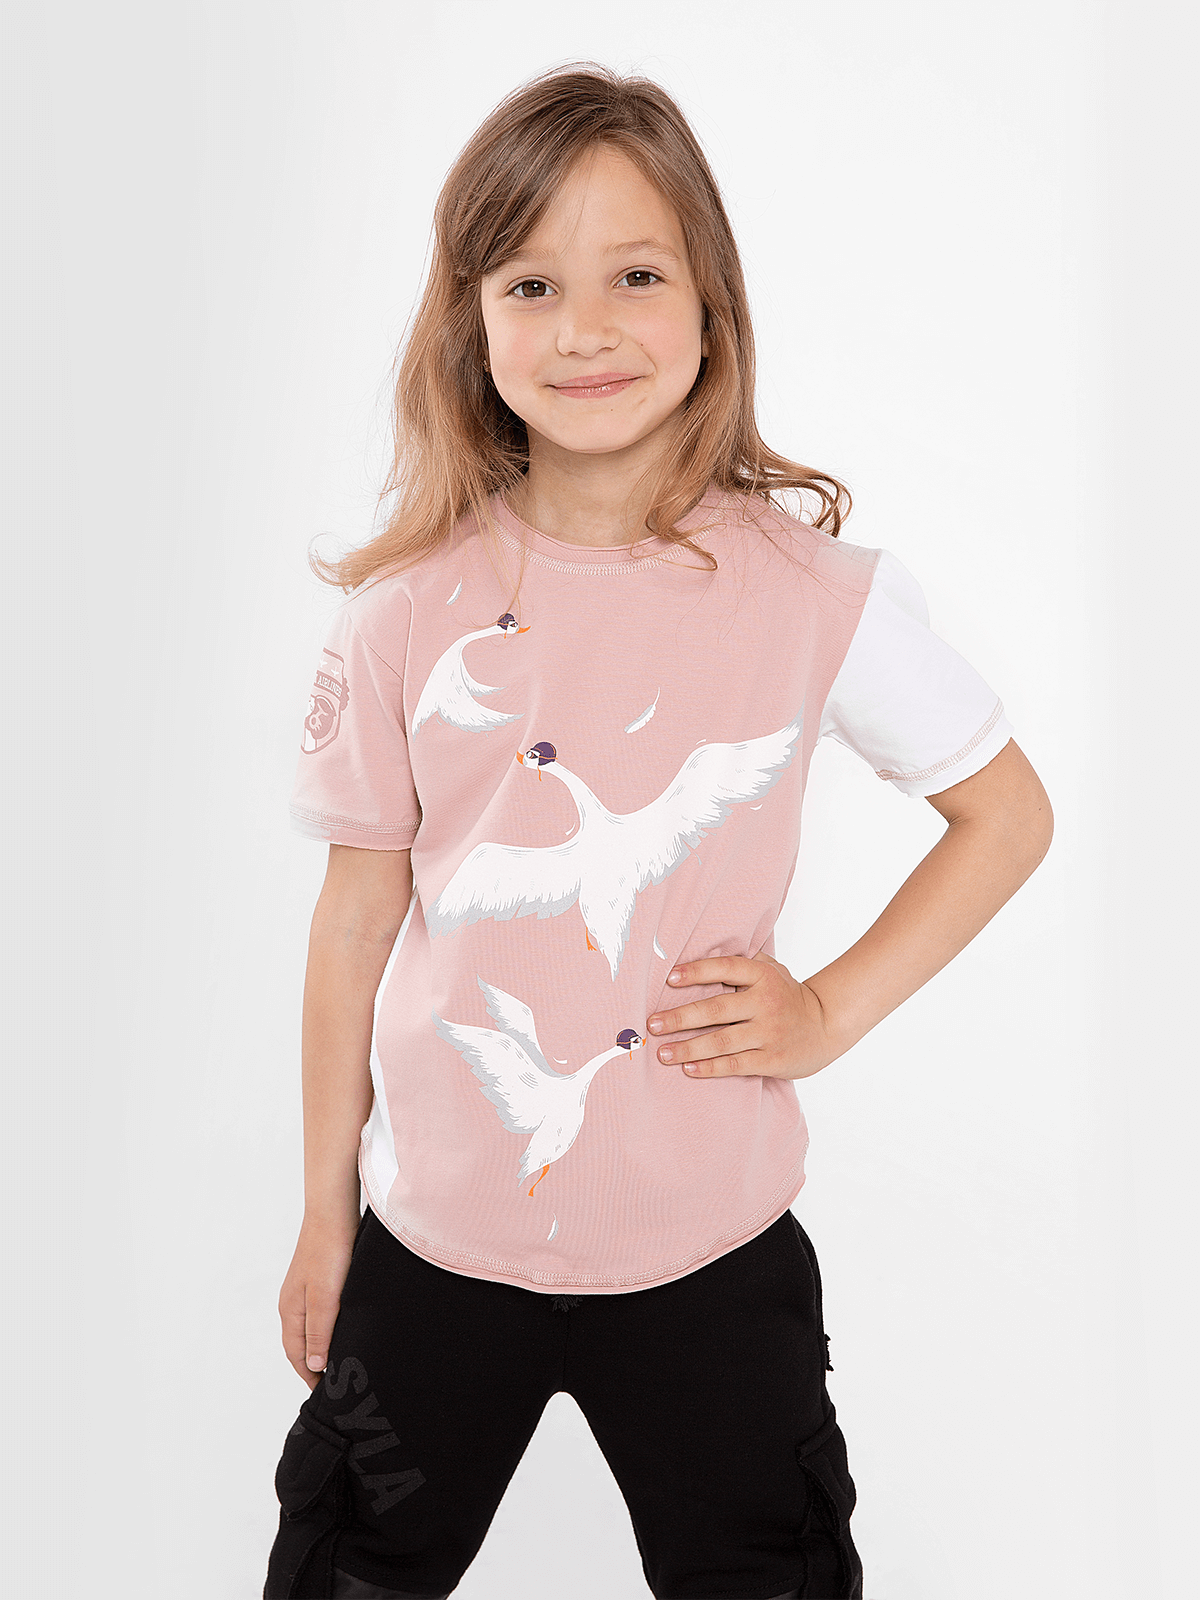 Kids T-Shirt Geese. Color pale pink. T-shirt: girl's.